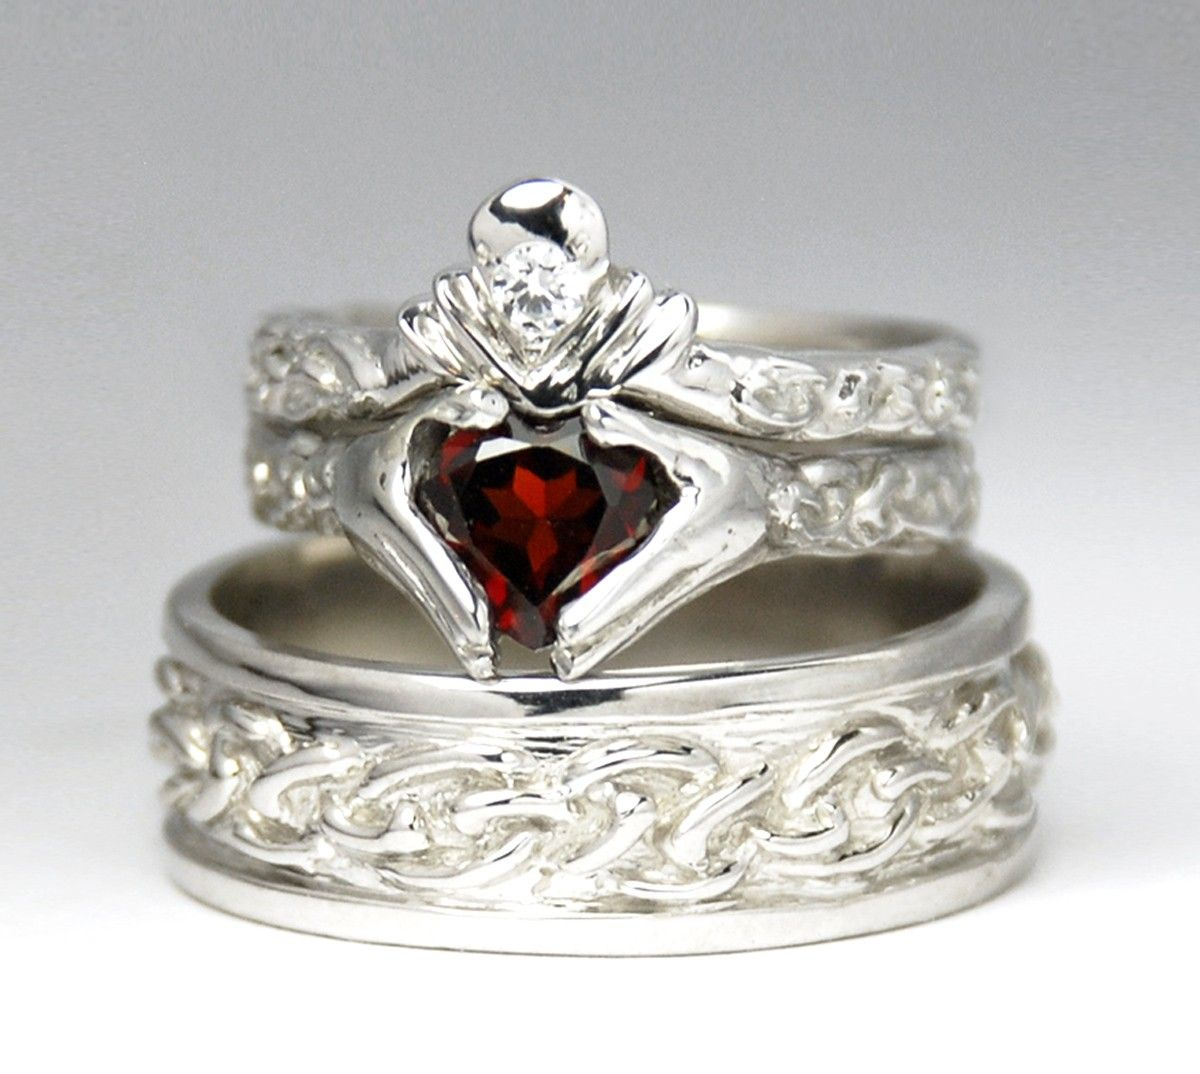 wedding sets Claddagh Wedding Set New White gold Diamond Garnet Engagement Ring Men s Celtic Band Bridal Set Rickson 48 49b 52